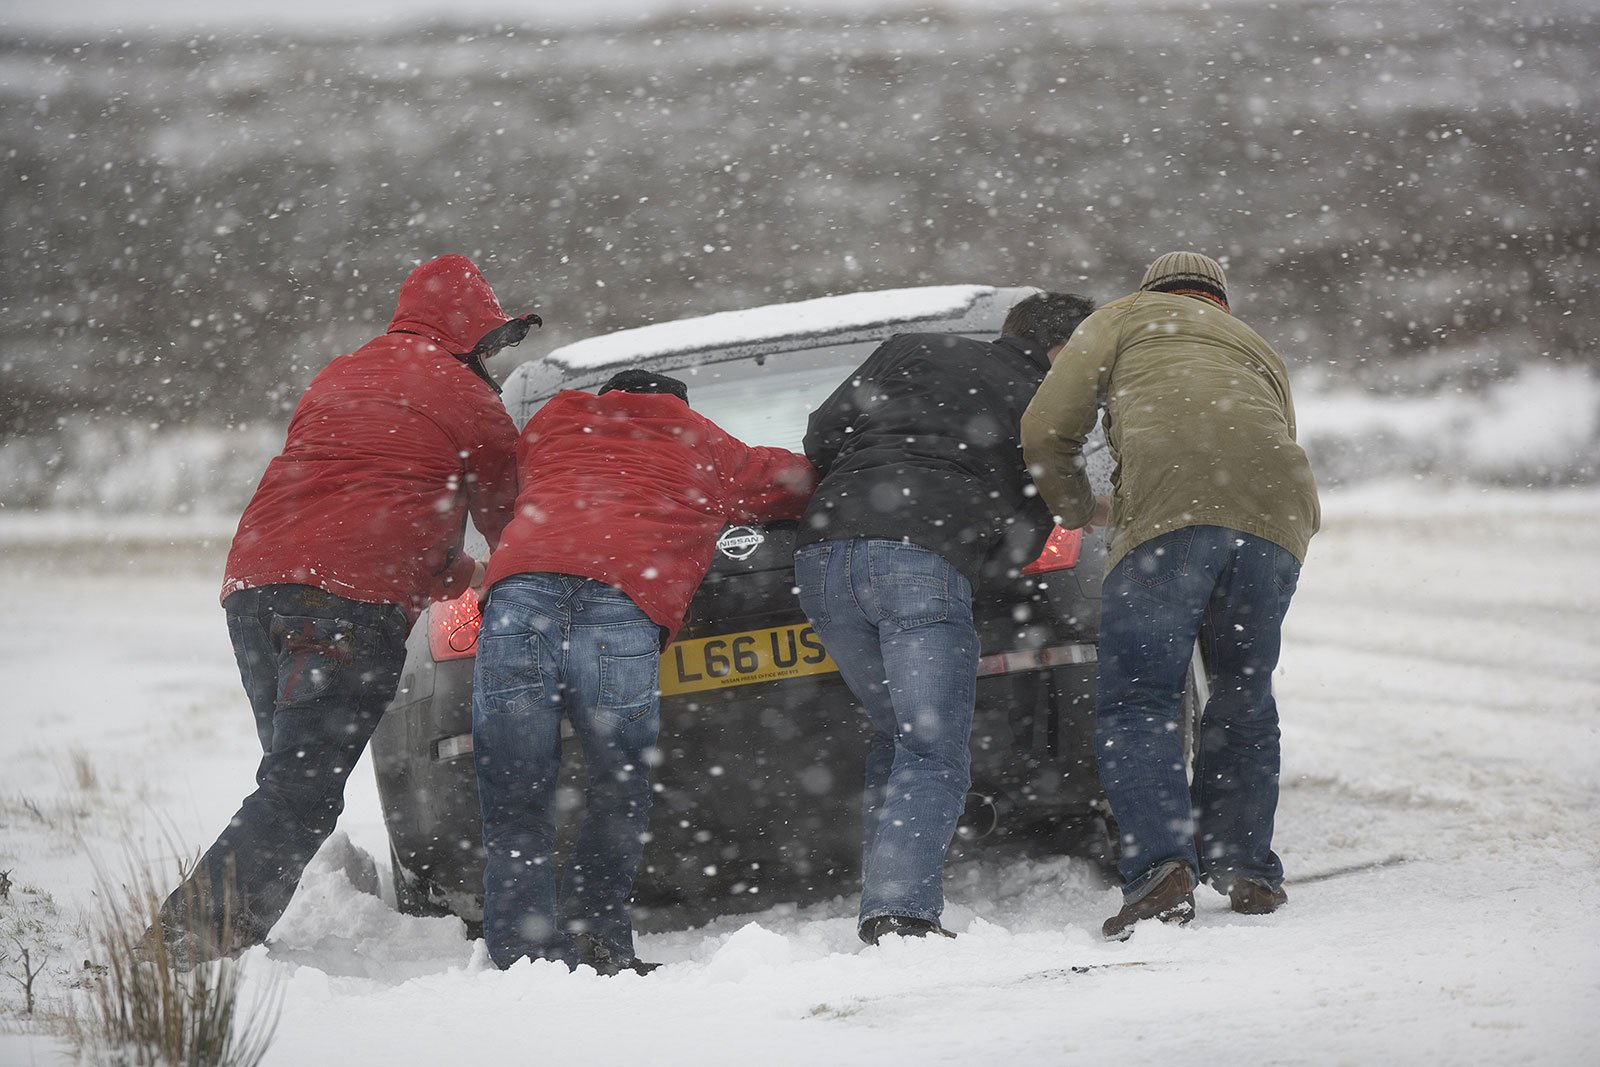 Nissan being pushed in snow